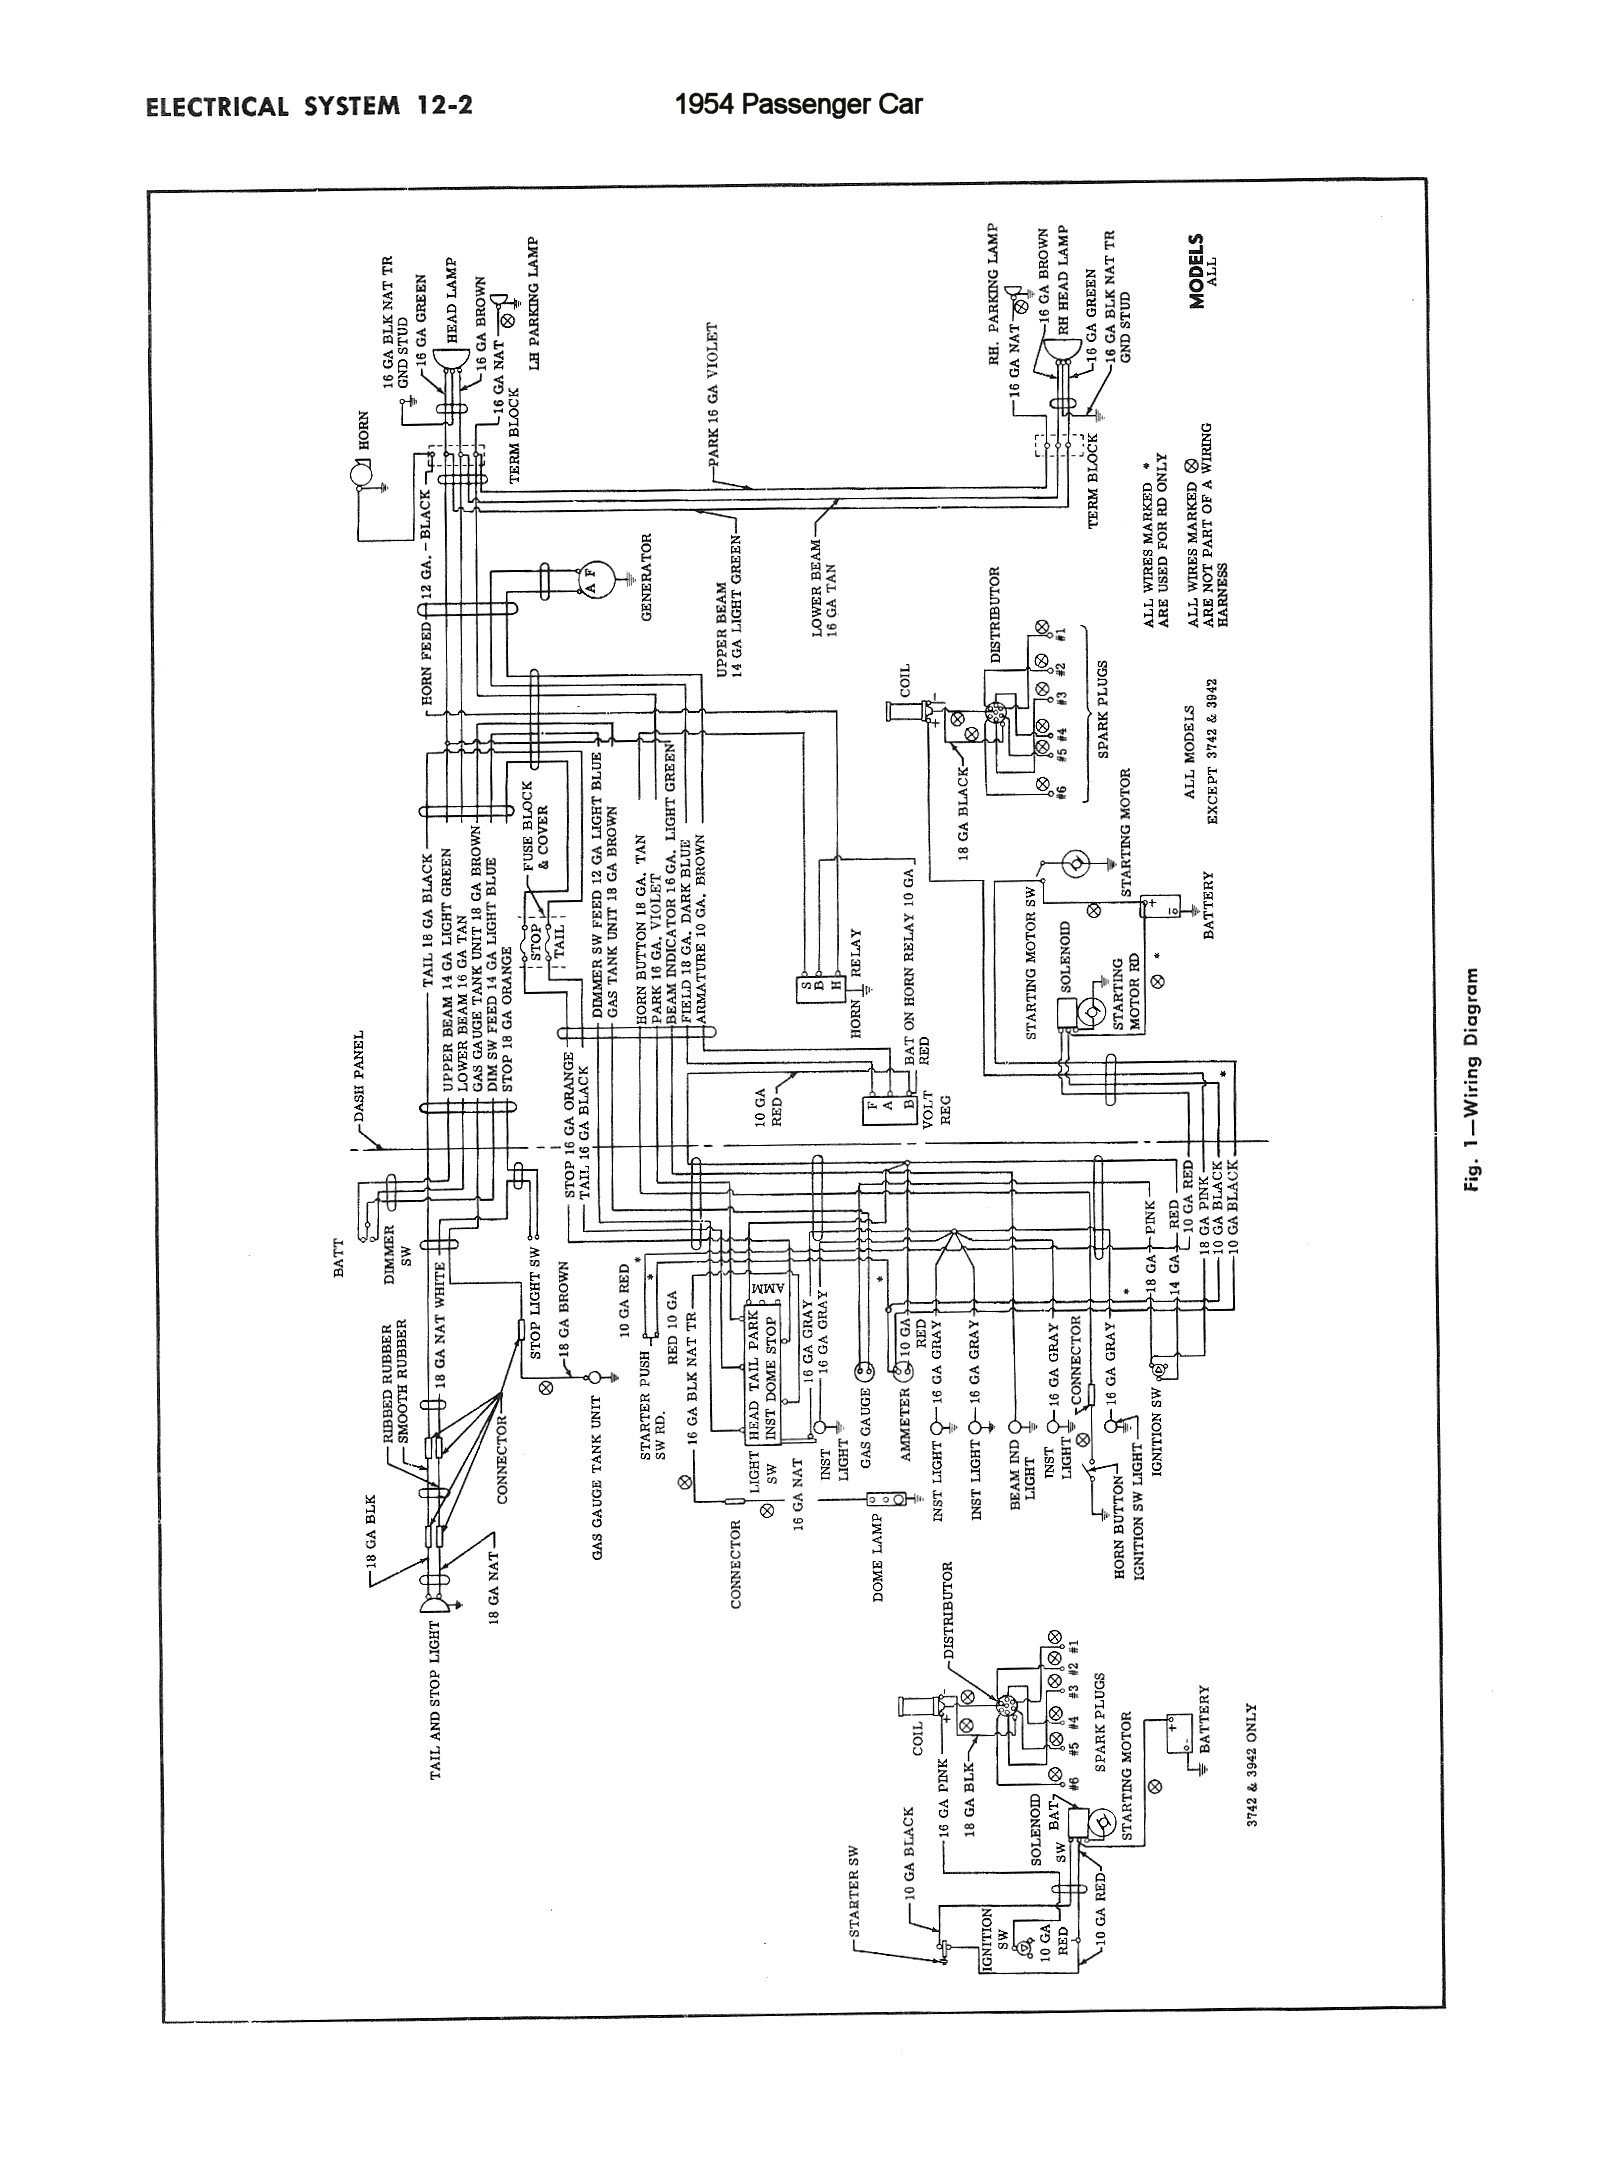 hight resolution of chevy wiring diagrams1954 truck wiring 1954 passenger car wiring 3